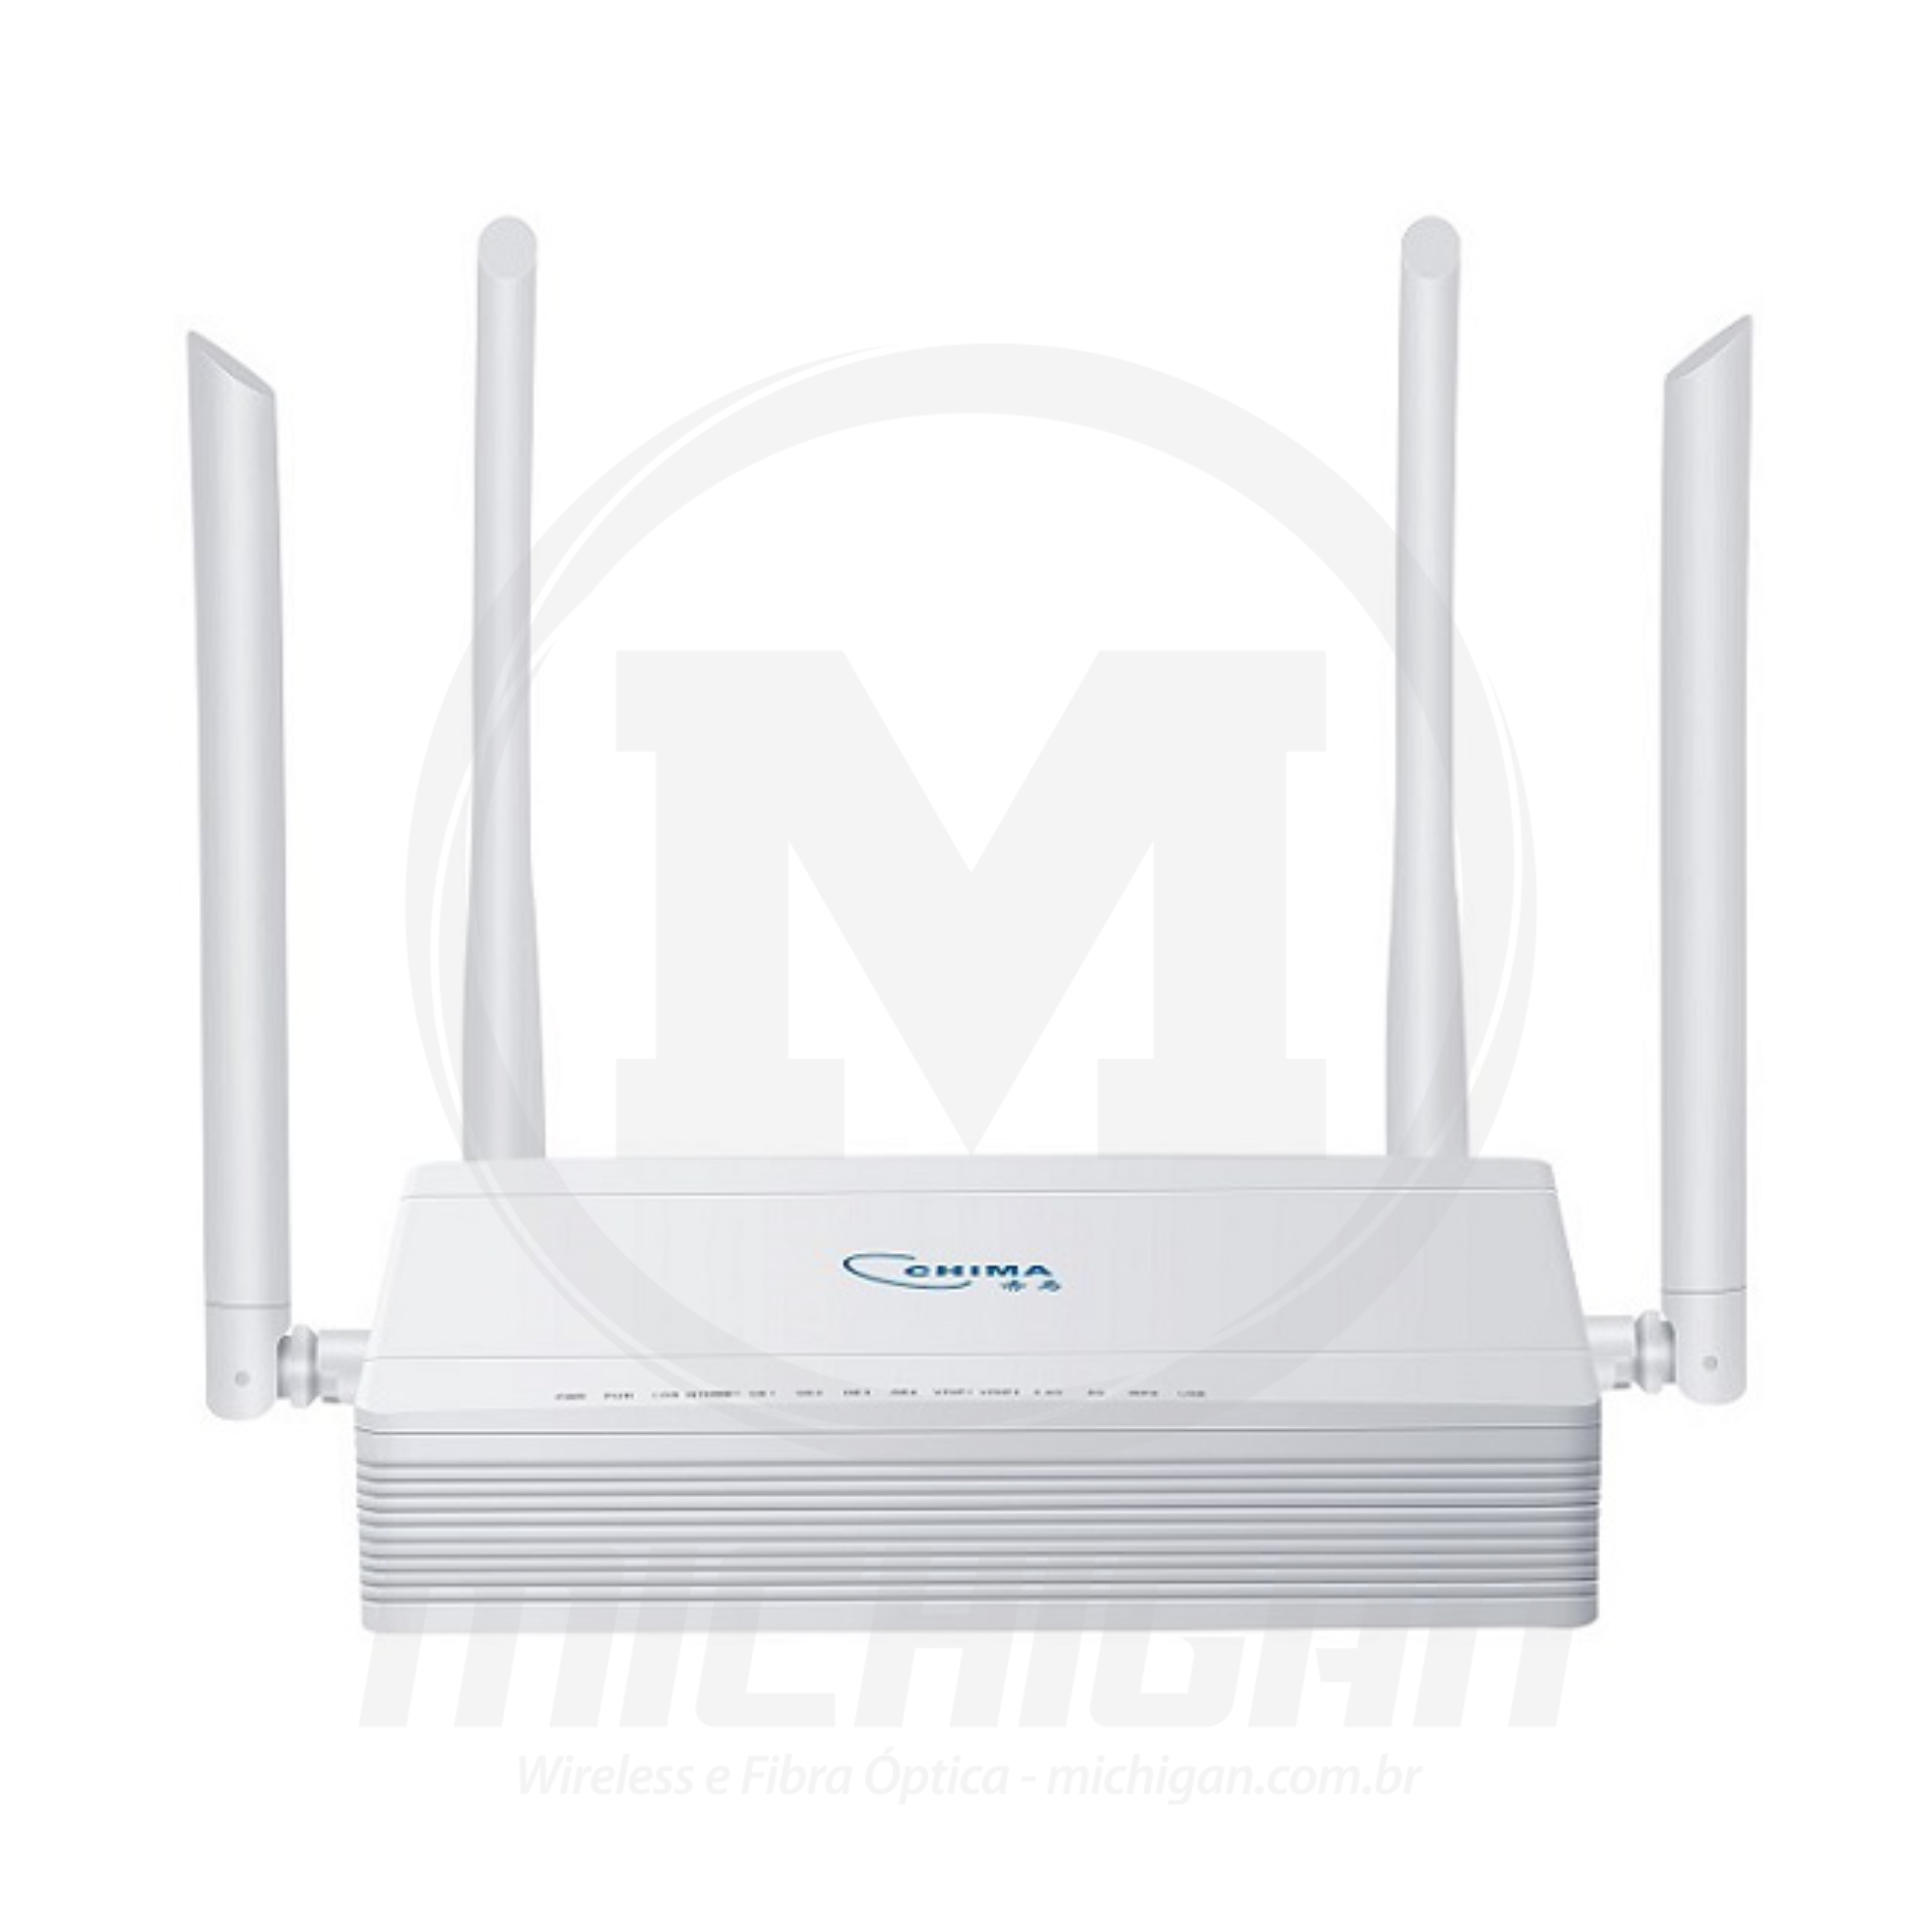 Onu Chima SDN7758VACG4 4GE+ 2FXS+1200mbps